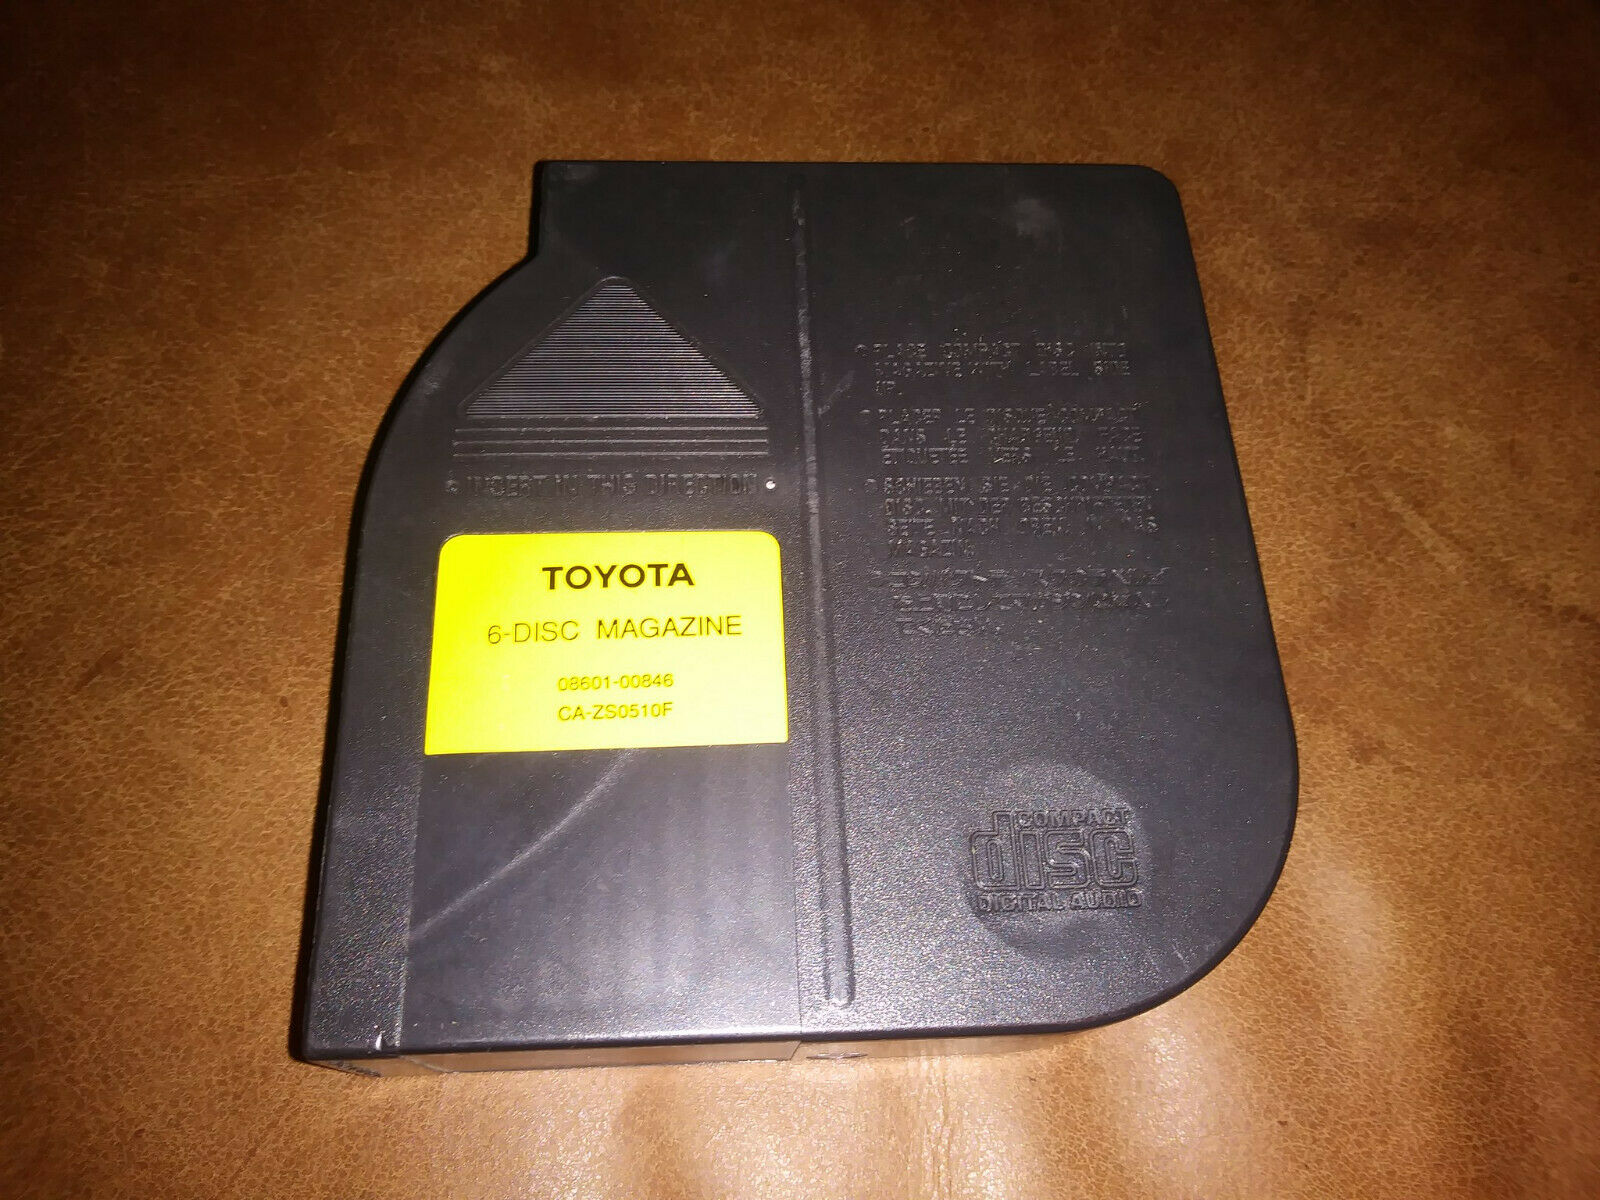 Toyota 6 Disc Magazine CD Changer OEM Part ca-zs0510f